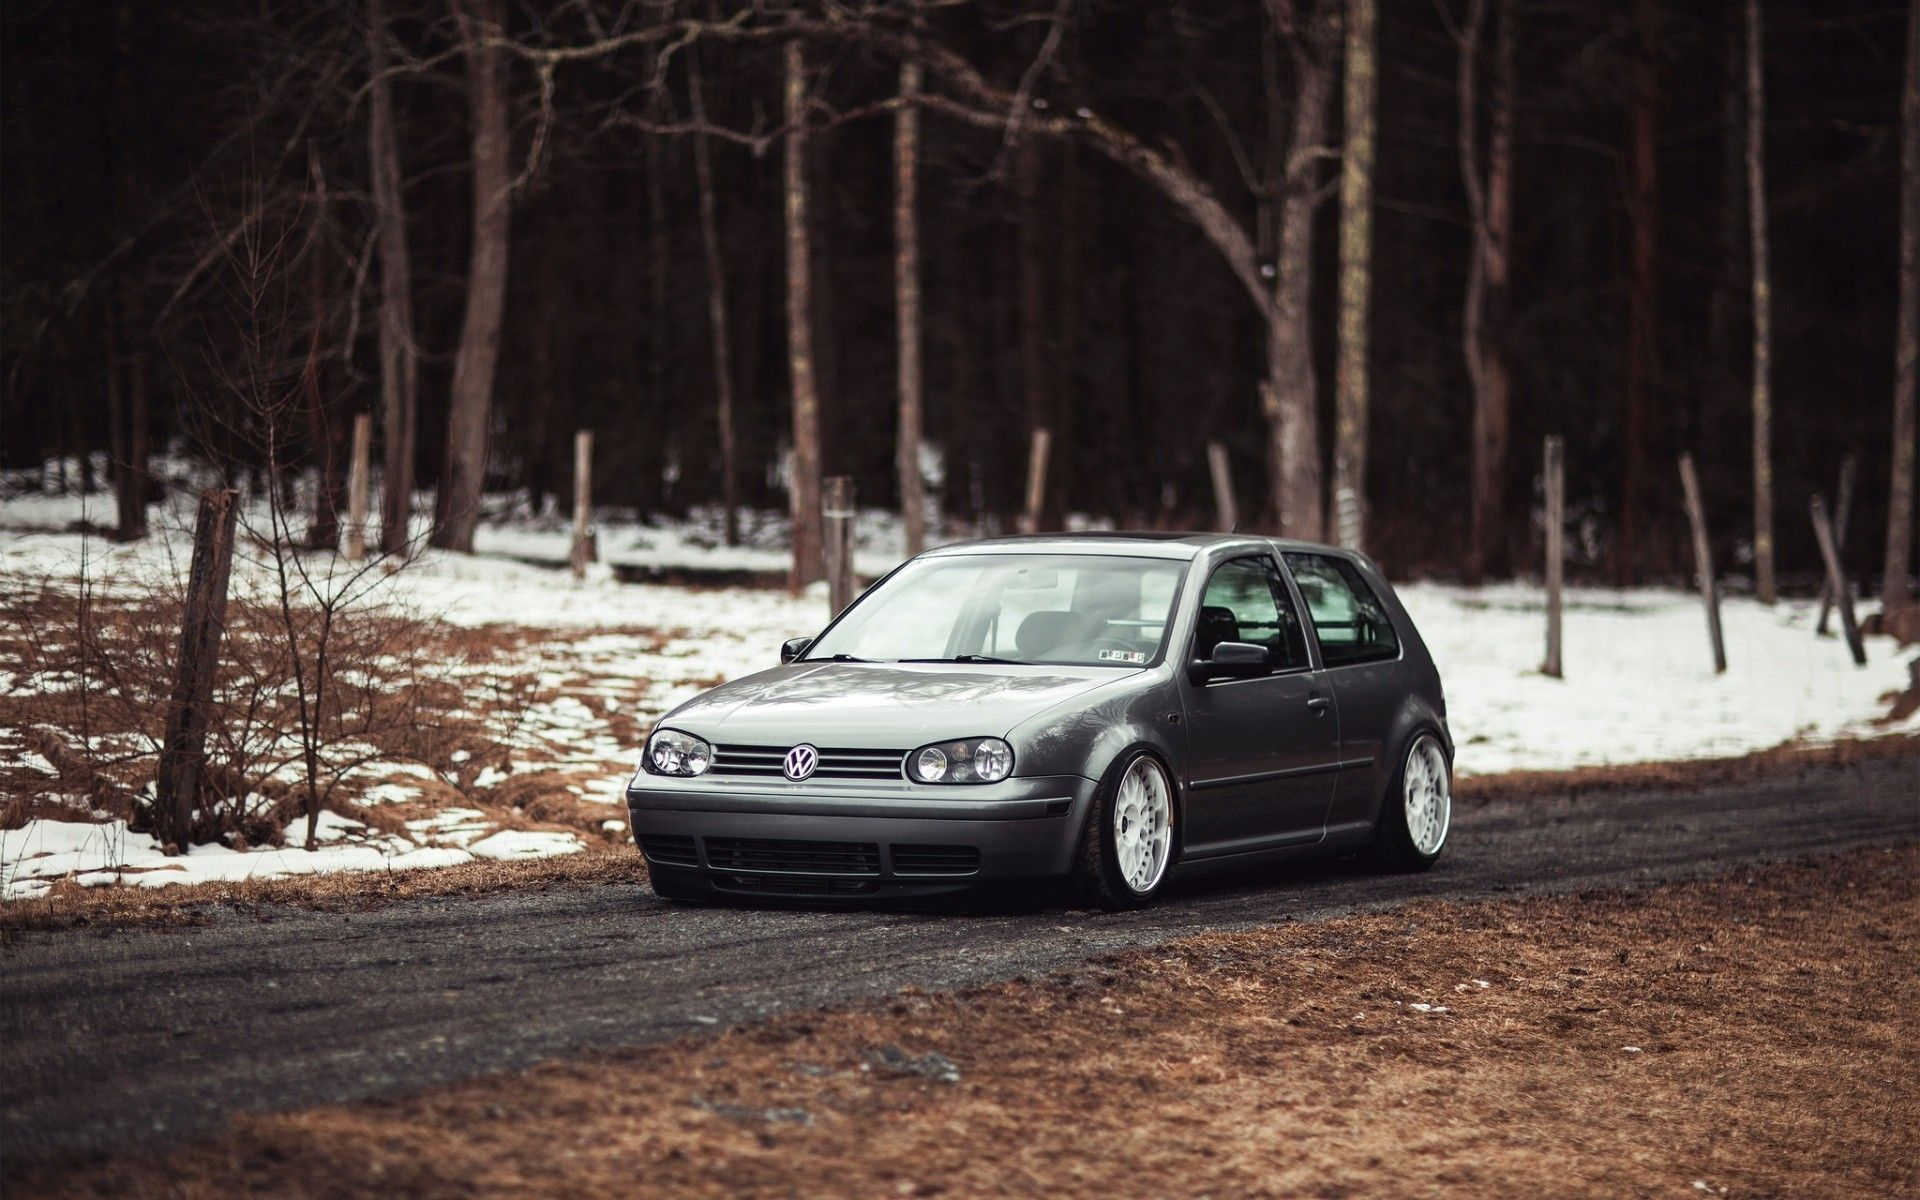 medium resolution of  mkiv golf iv car stance volkswagen gti wallpaper